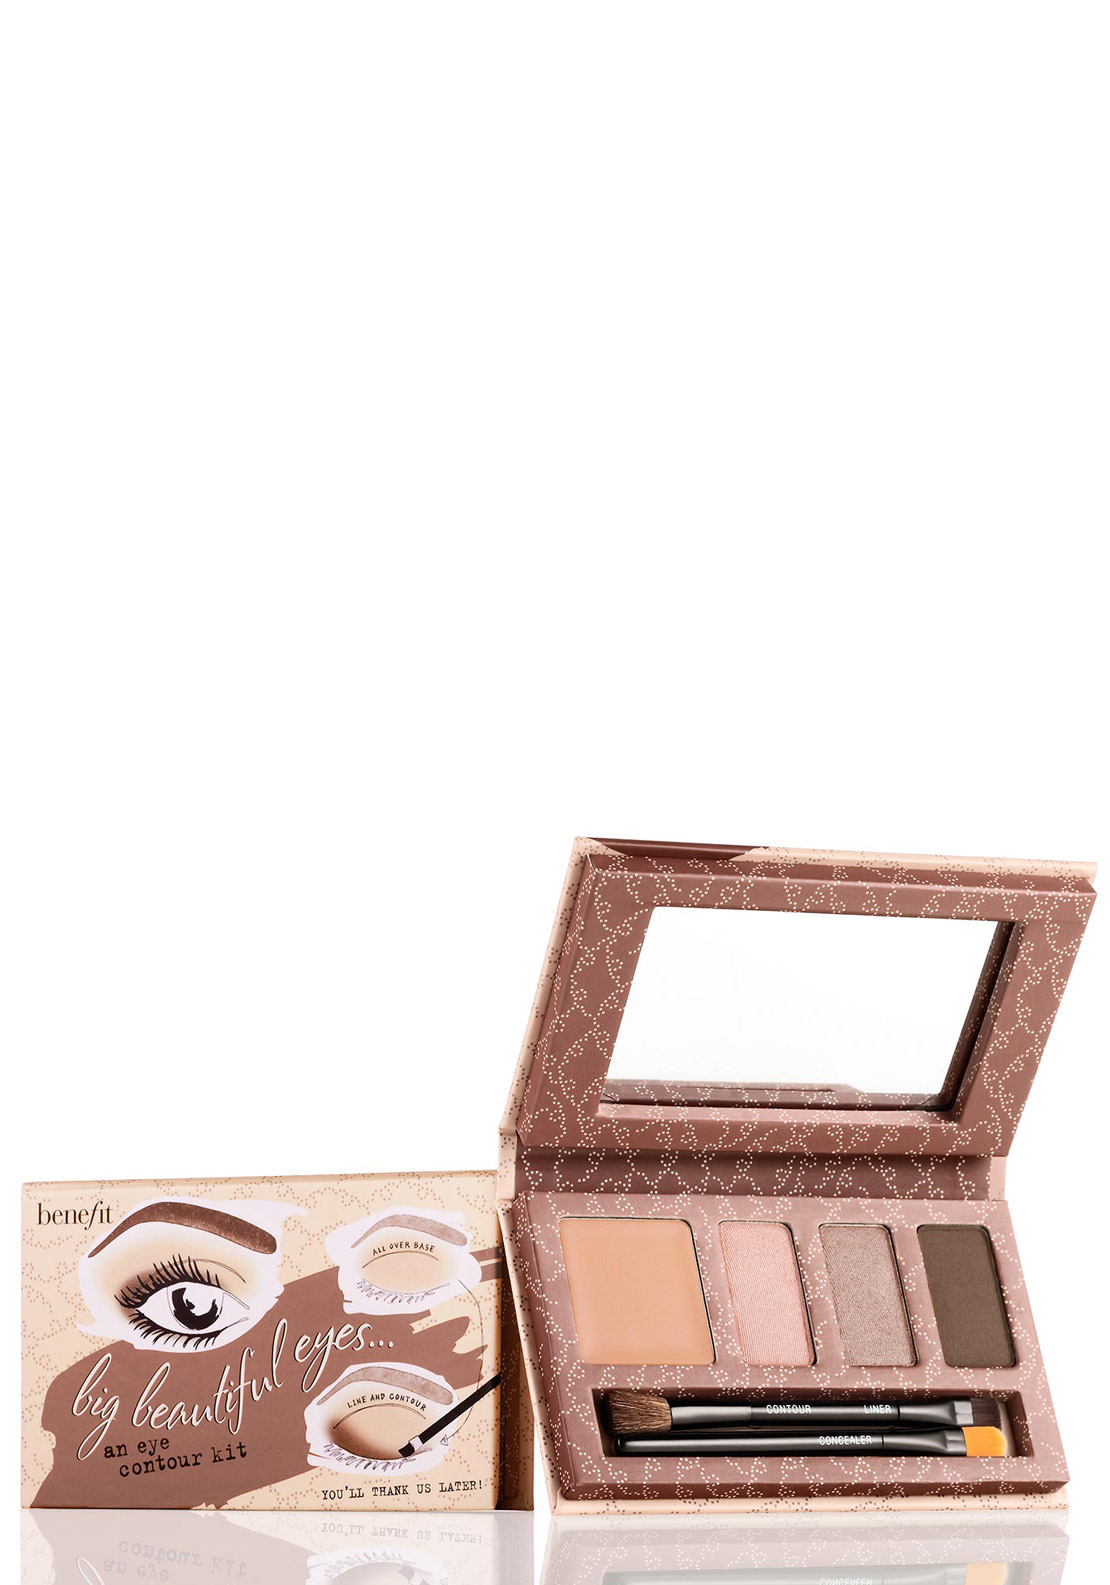 Benefit Big Beautiful Eyes Eye Contour Kit